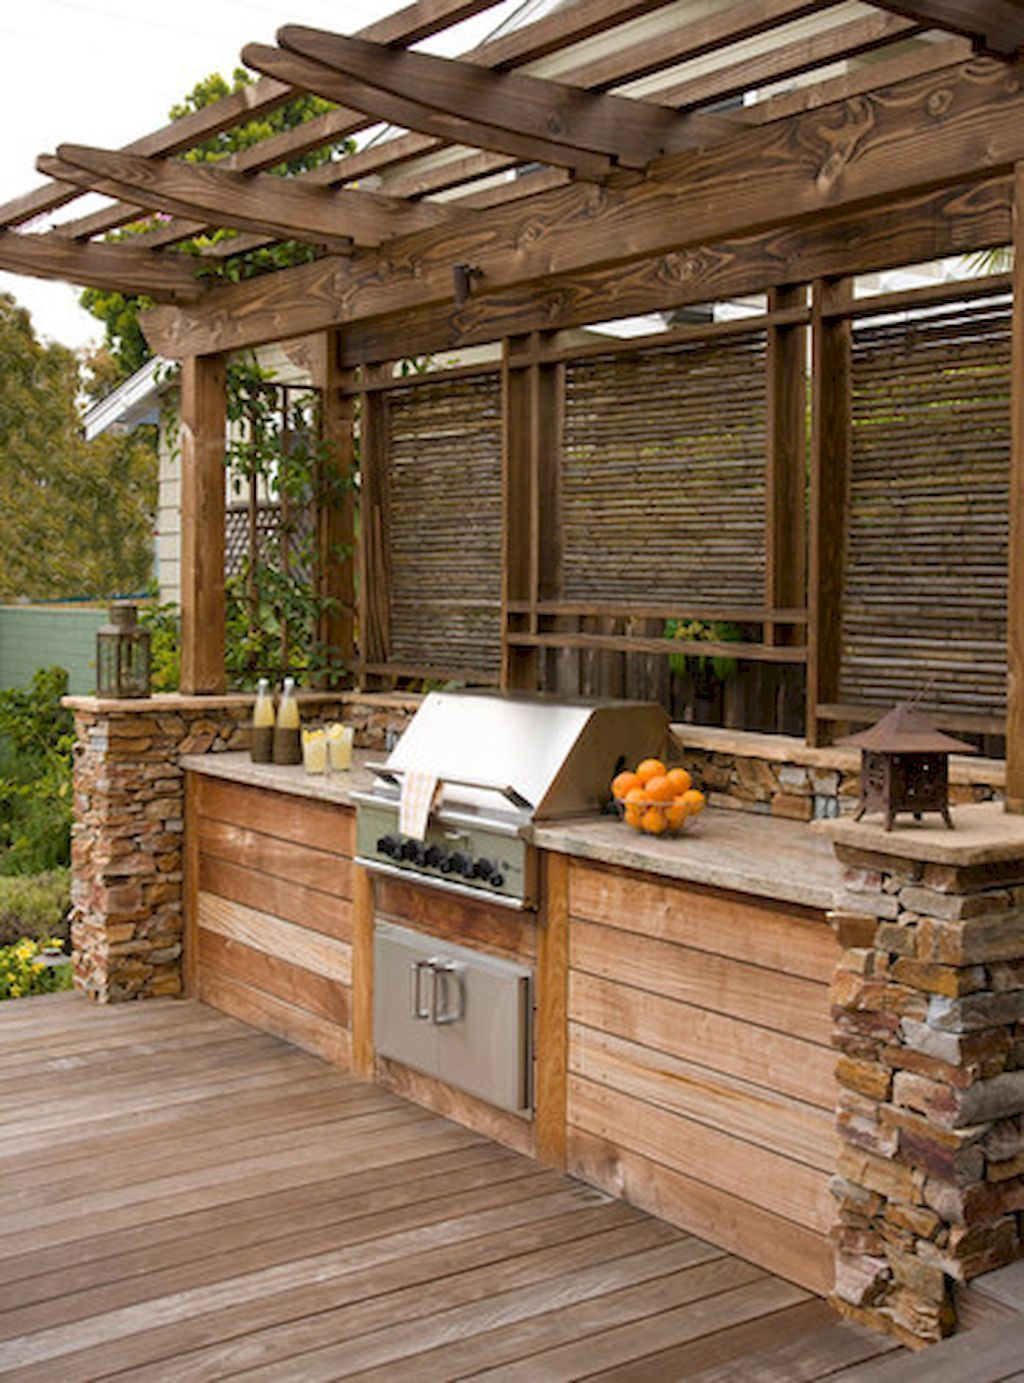 Outdoor Kitchen Design Ideas Uk ~ Outdoor kitchen design and ideas for your stunning